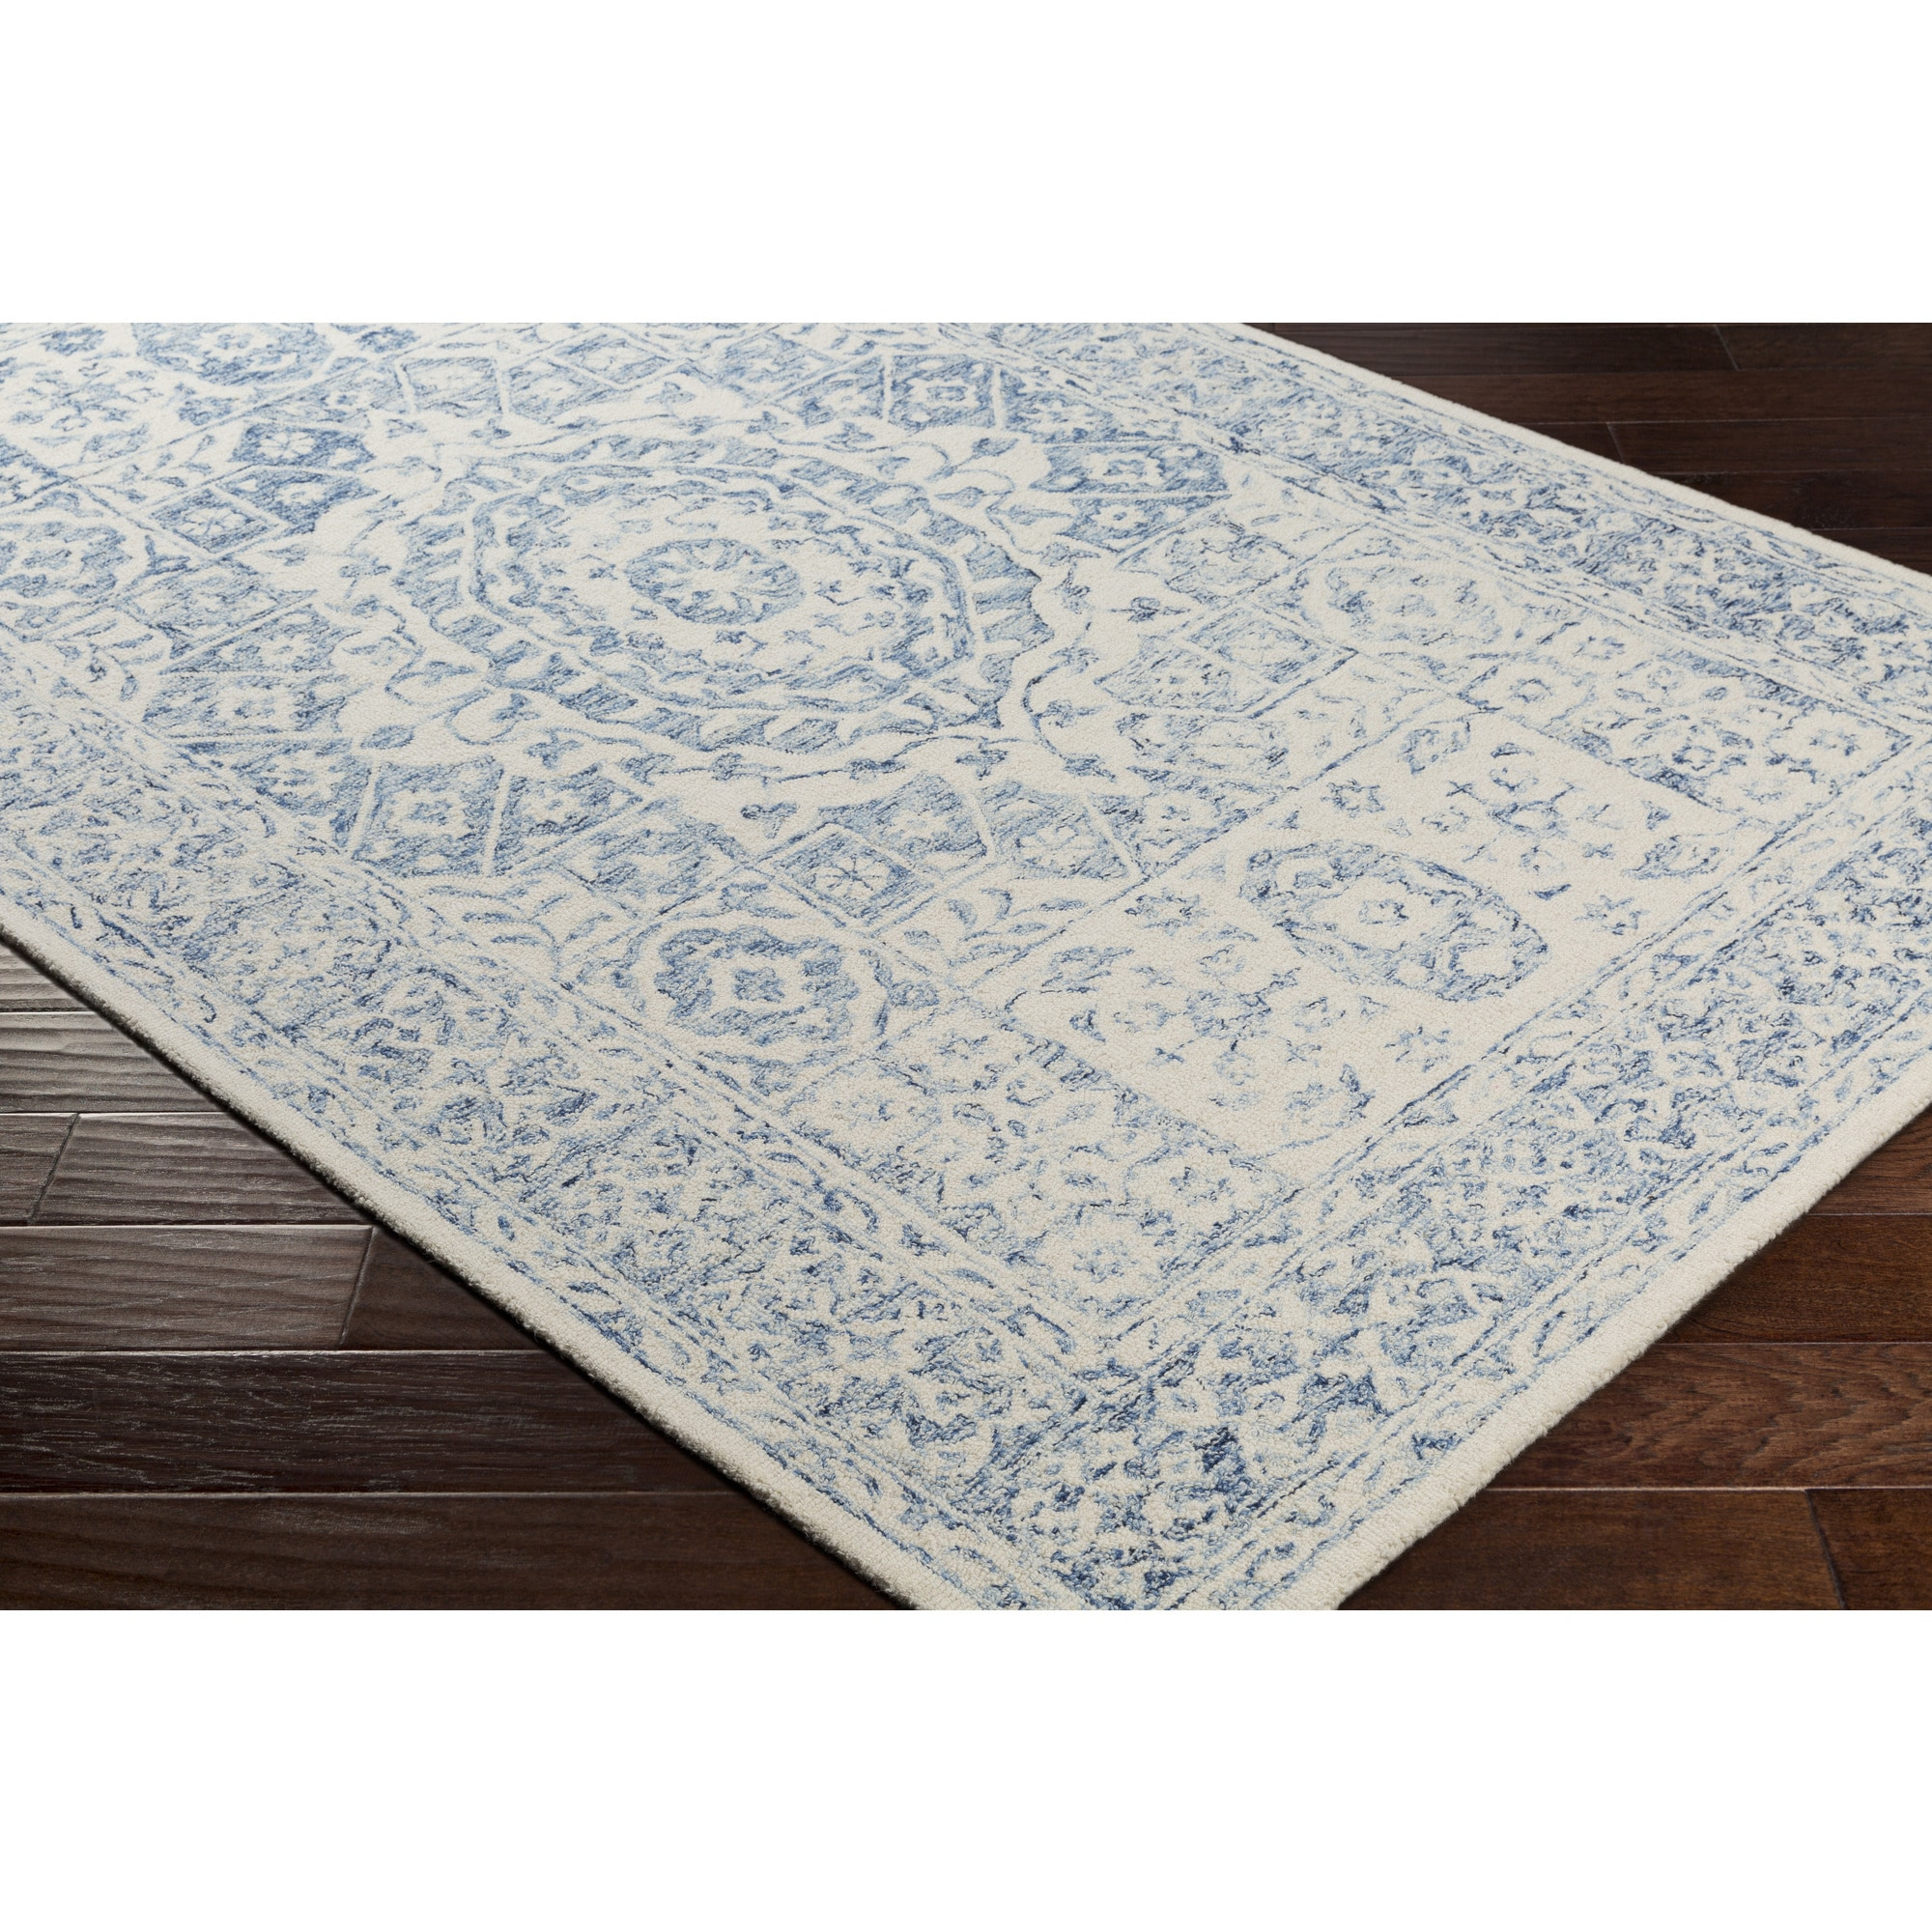 Copper Grove Sandbank Hand-hooked Wool Area Rug - 3'3 x 5'3